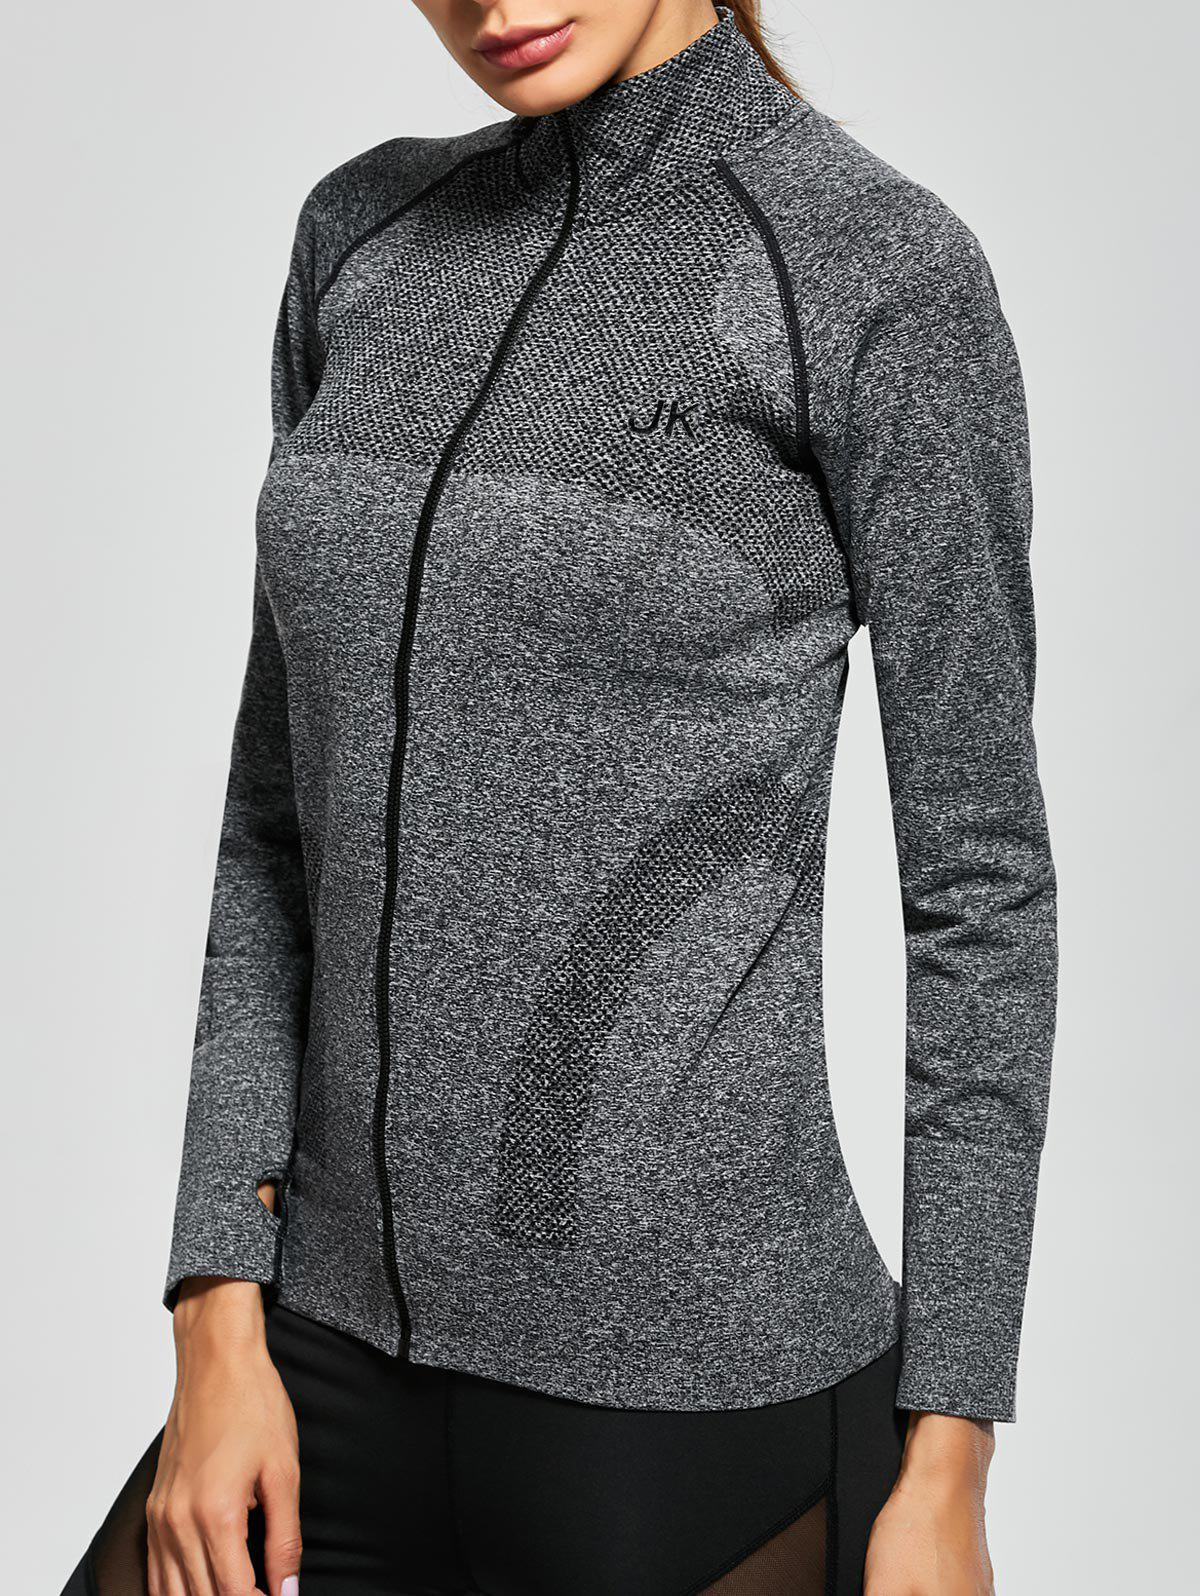 Quick Dry Zipper Work Out Running Jacket - GRAY L